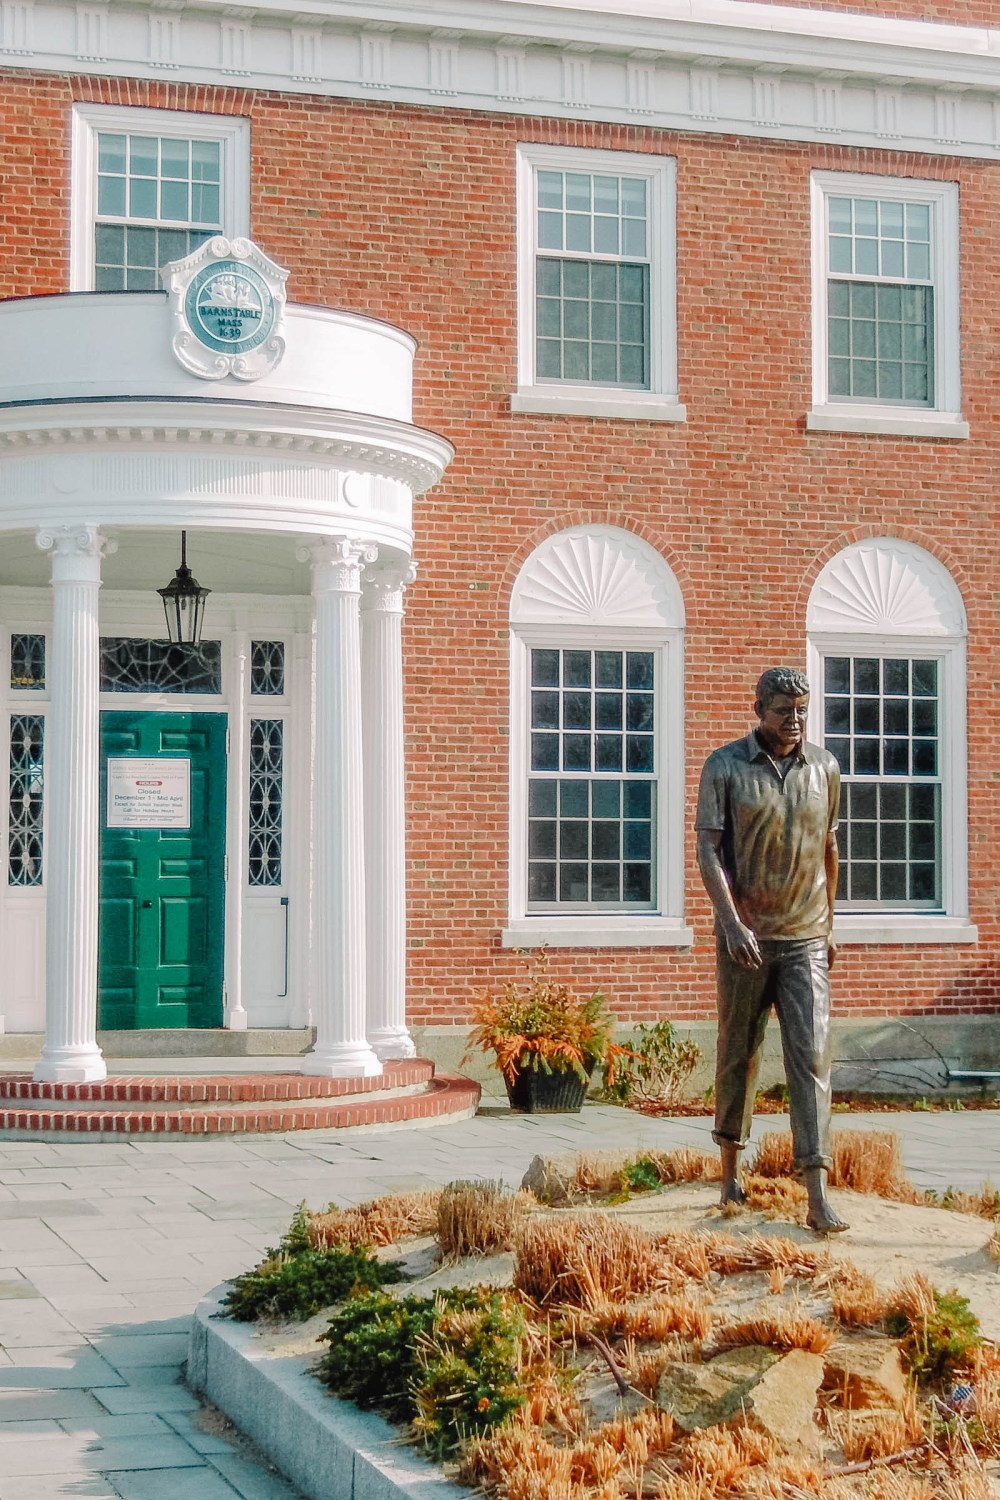 JFK Things To Do In Cape Cod In Massachusetts